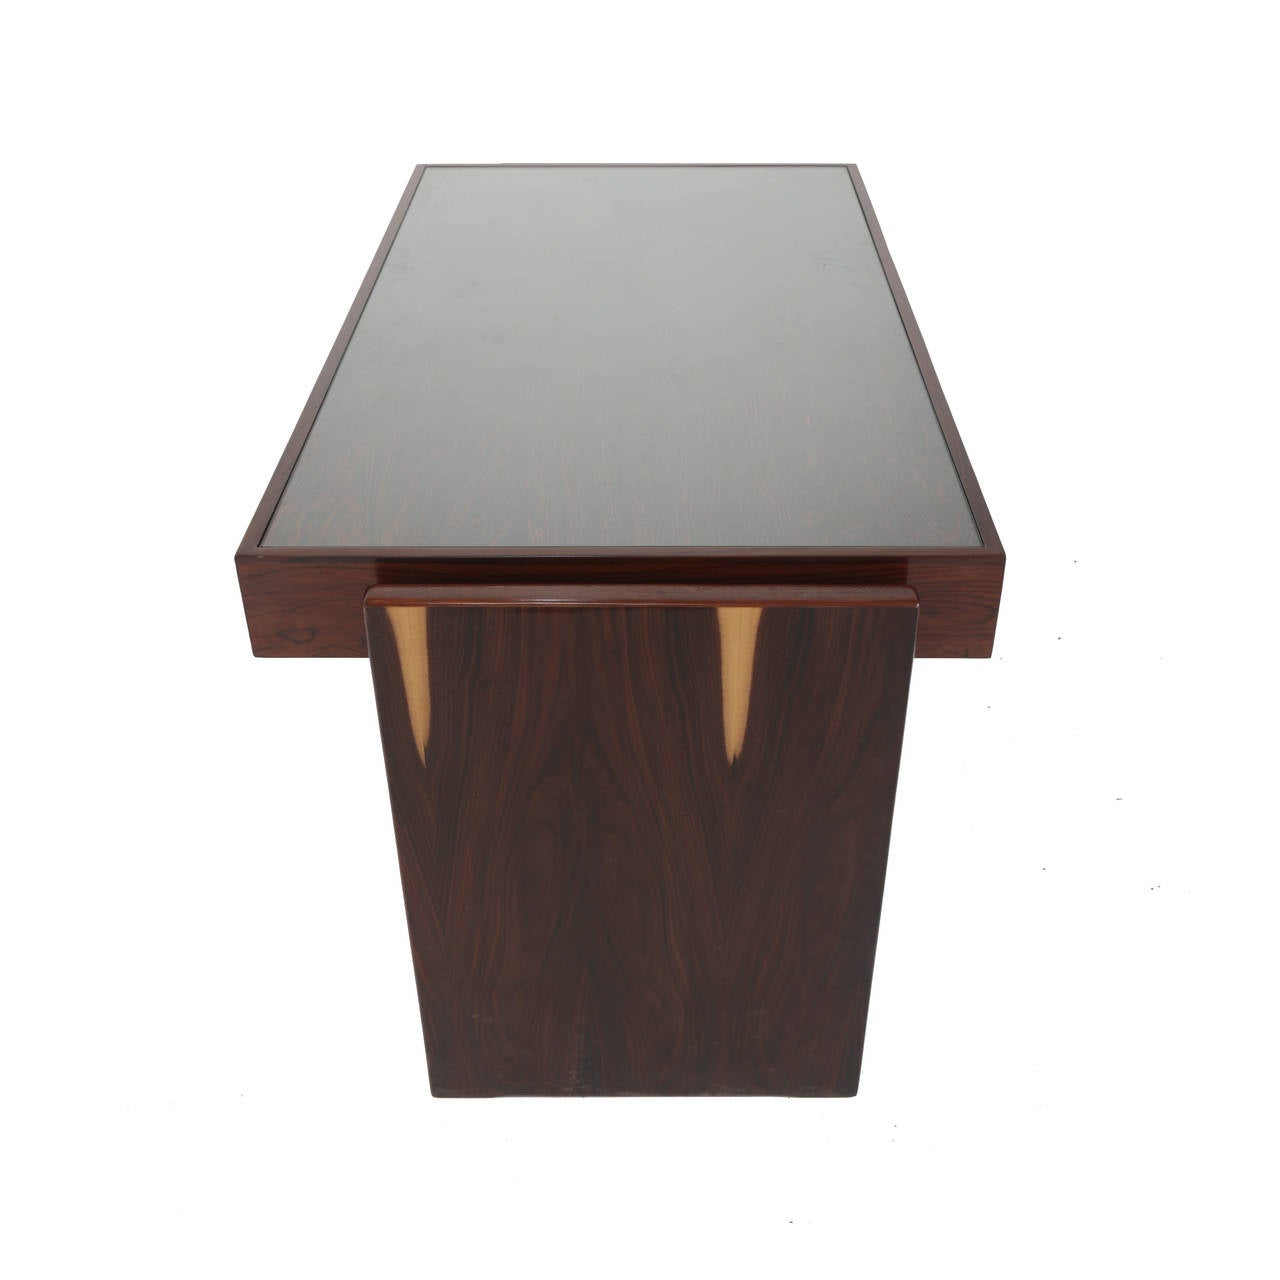 Mid-20th Century Rosewood and Glass Desk by Joaquim Tenreiro For Sale